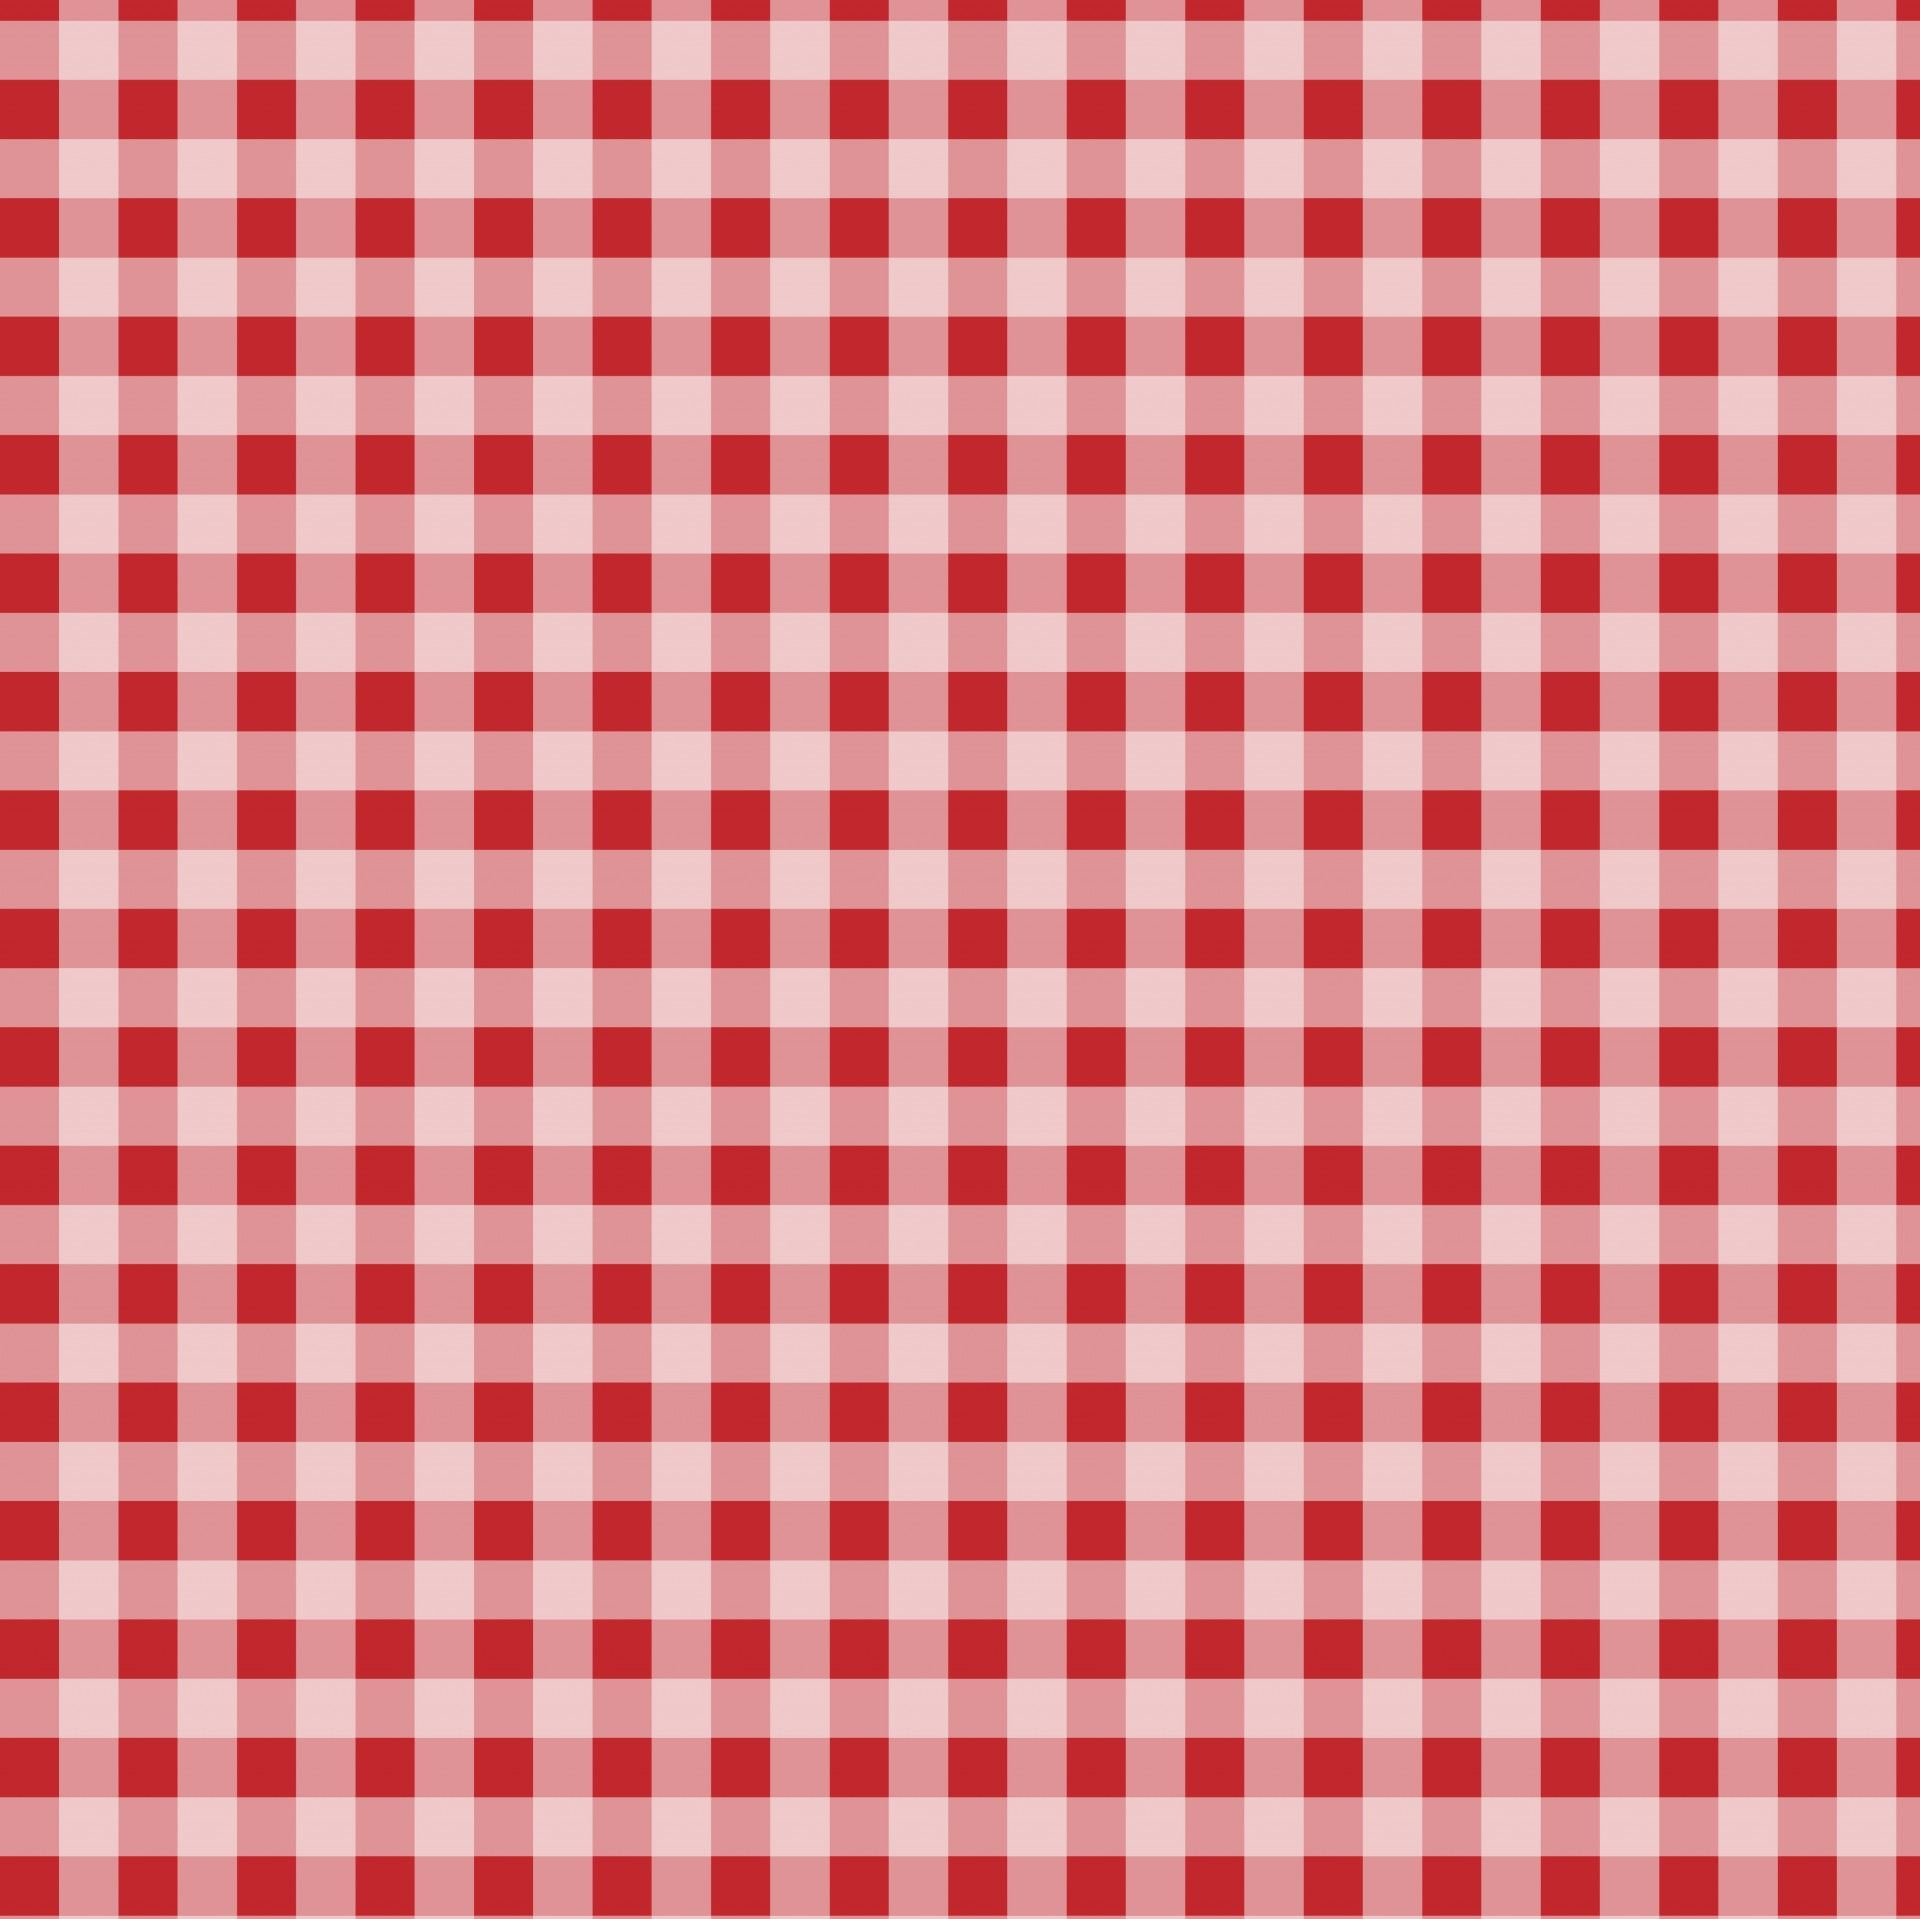 Checks Red Gingham Background Free Stock Photo Public Domain Pictures Stock Photo Free Free